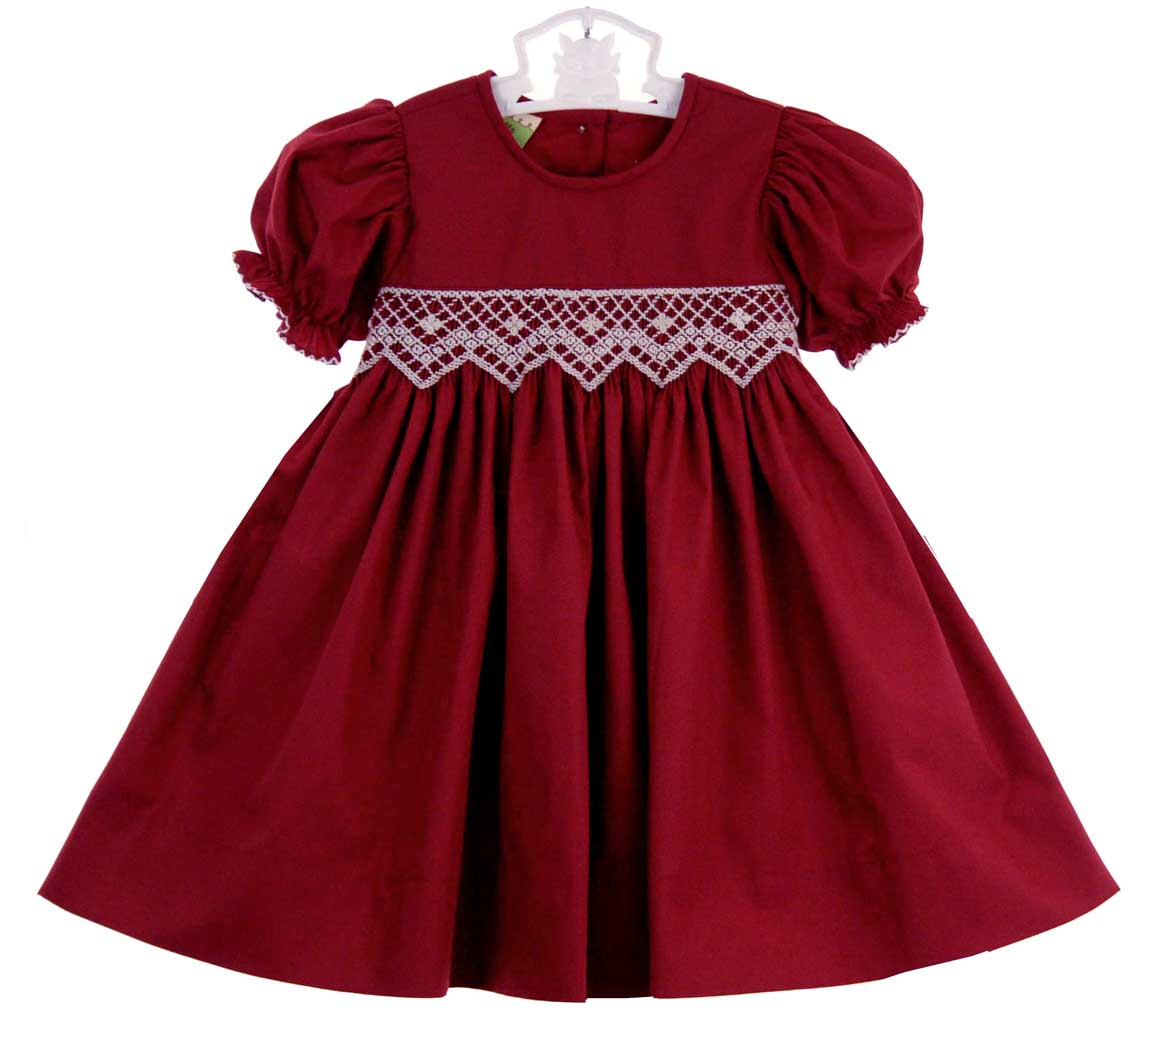 Le Za Me Cranberry Smocked Dress With Antique White